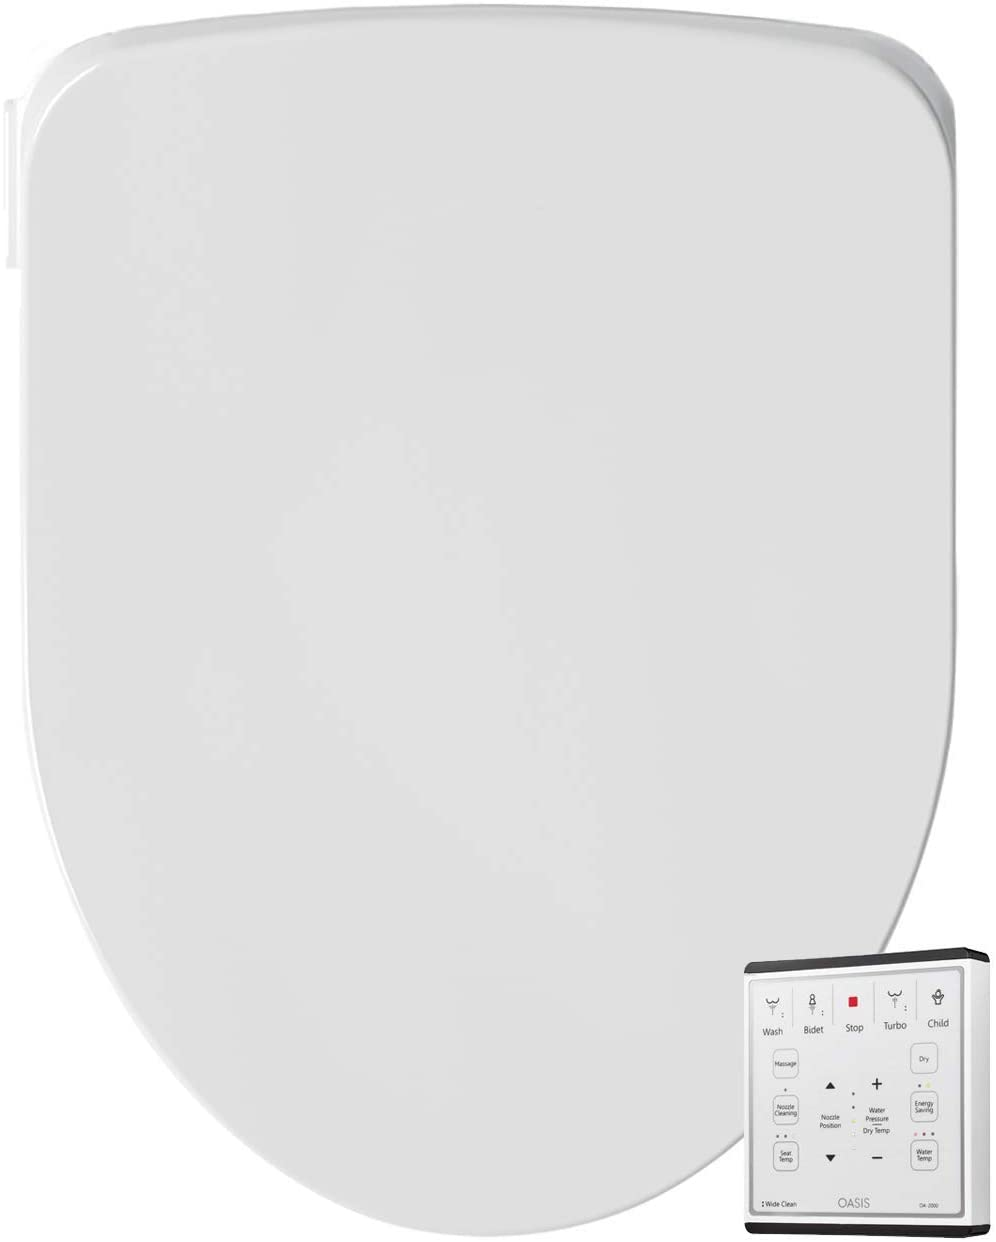 12 Best Heated Toilet Seats in [year] - {Buyer's Guide} 9